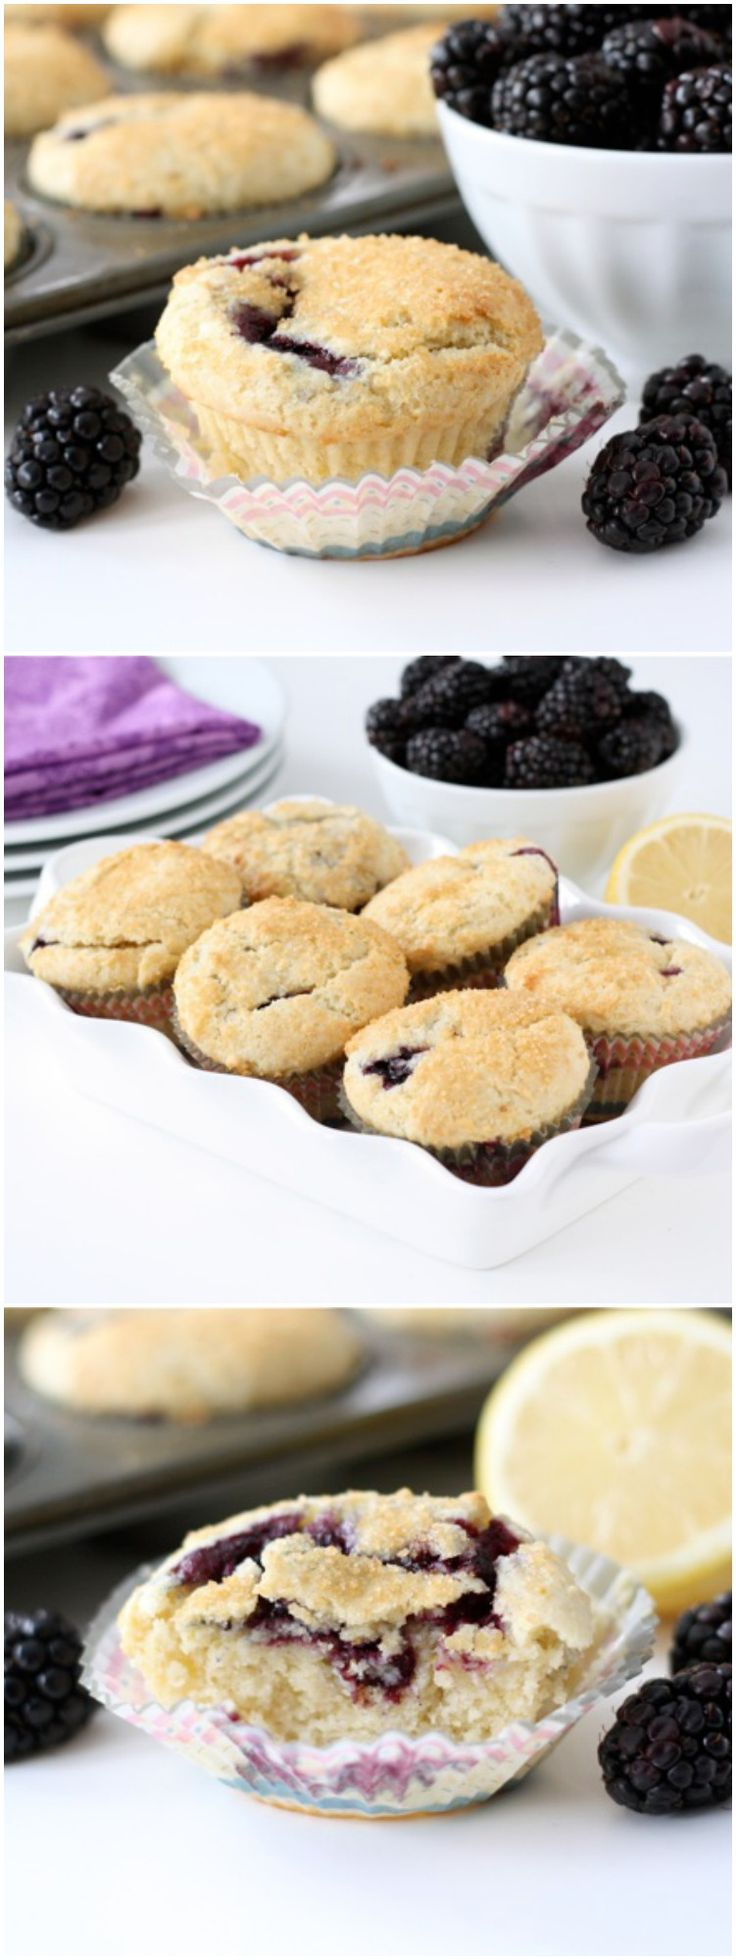 Lemon Ricotta Blackberry Muffin Recipe on twopeasandtheirpod.com These muffins are a favorite at our house!